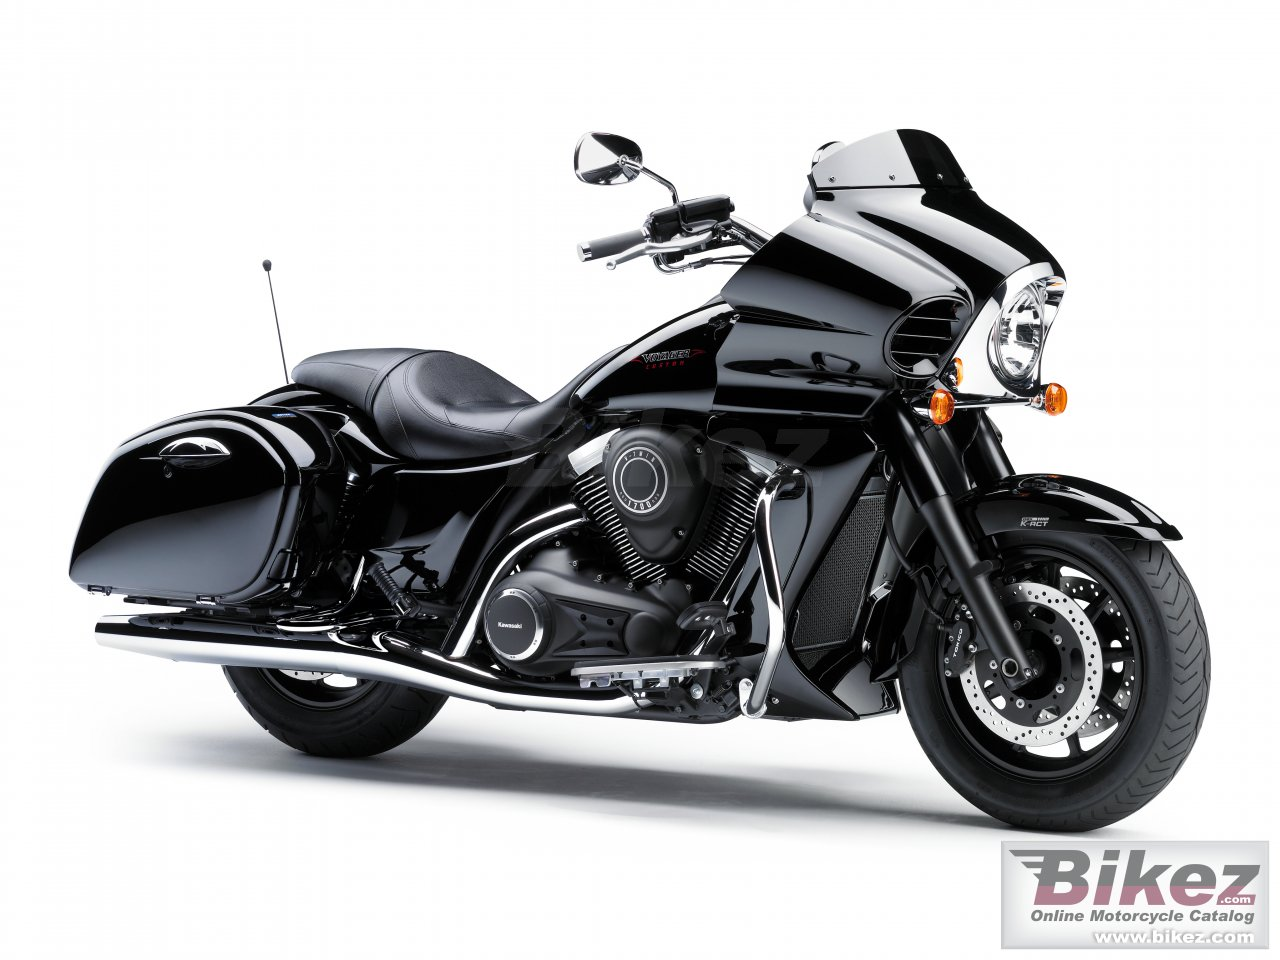 Big Kawasaki vulcan vn1700 voyager custom picture and wallpaper from Bikez.com